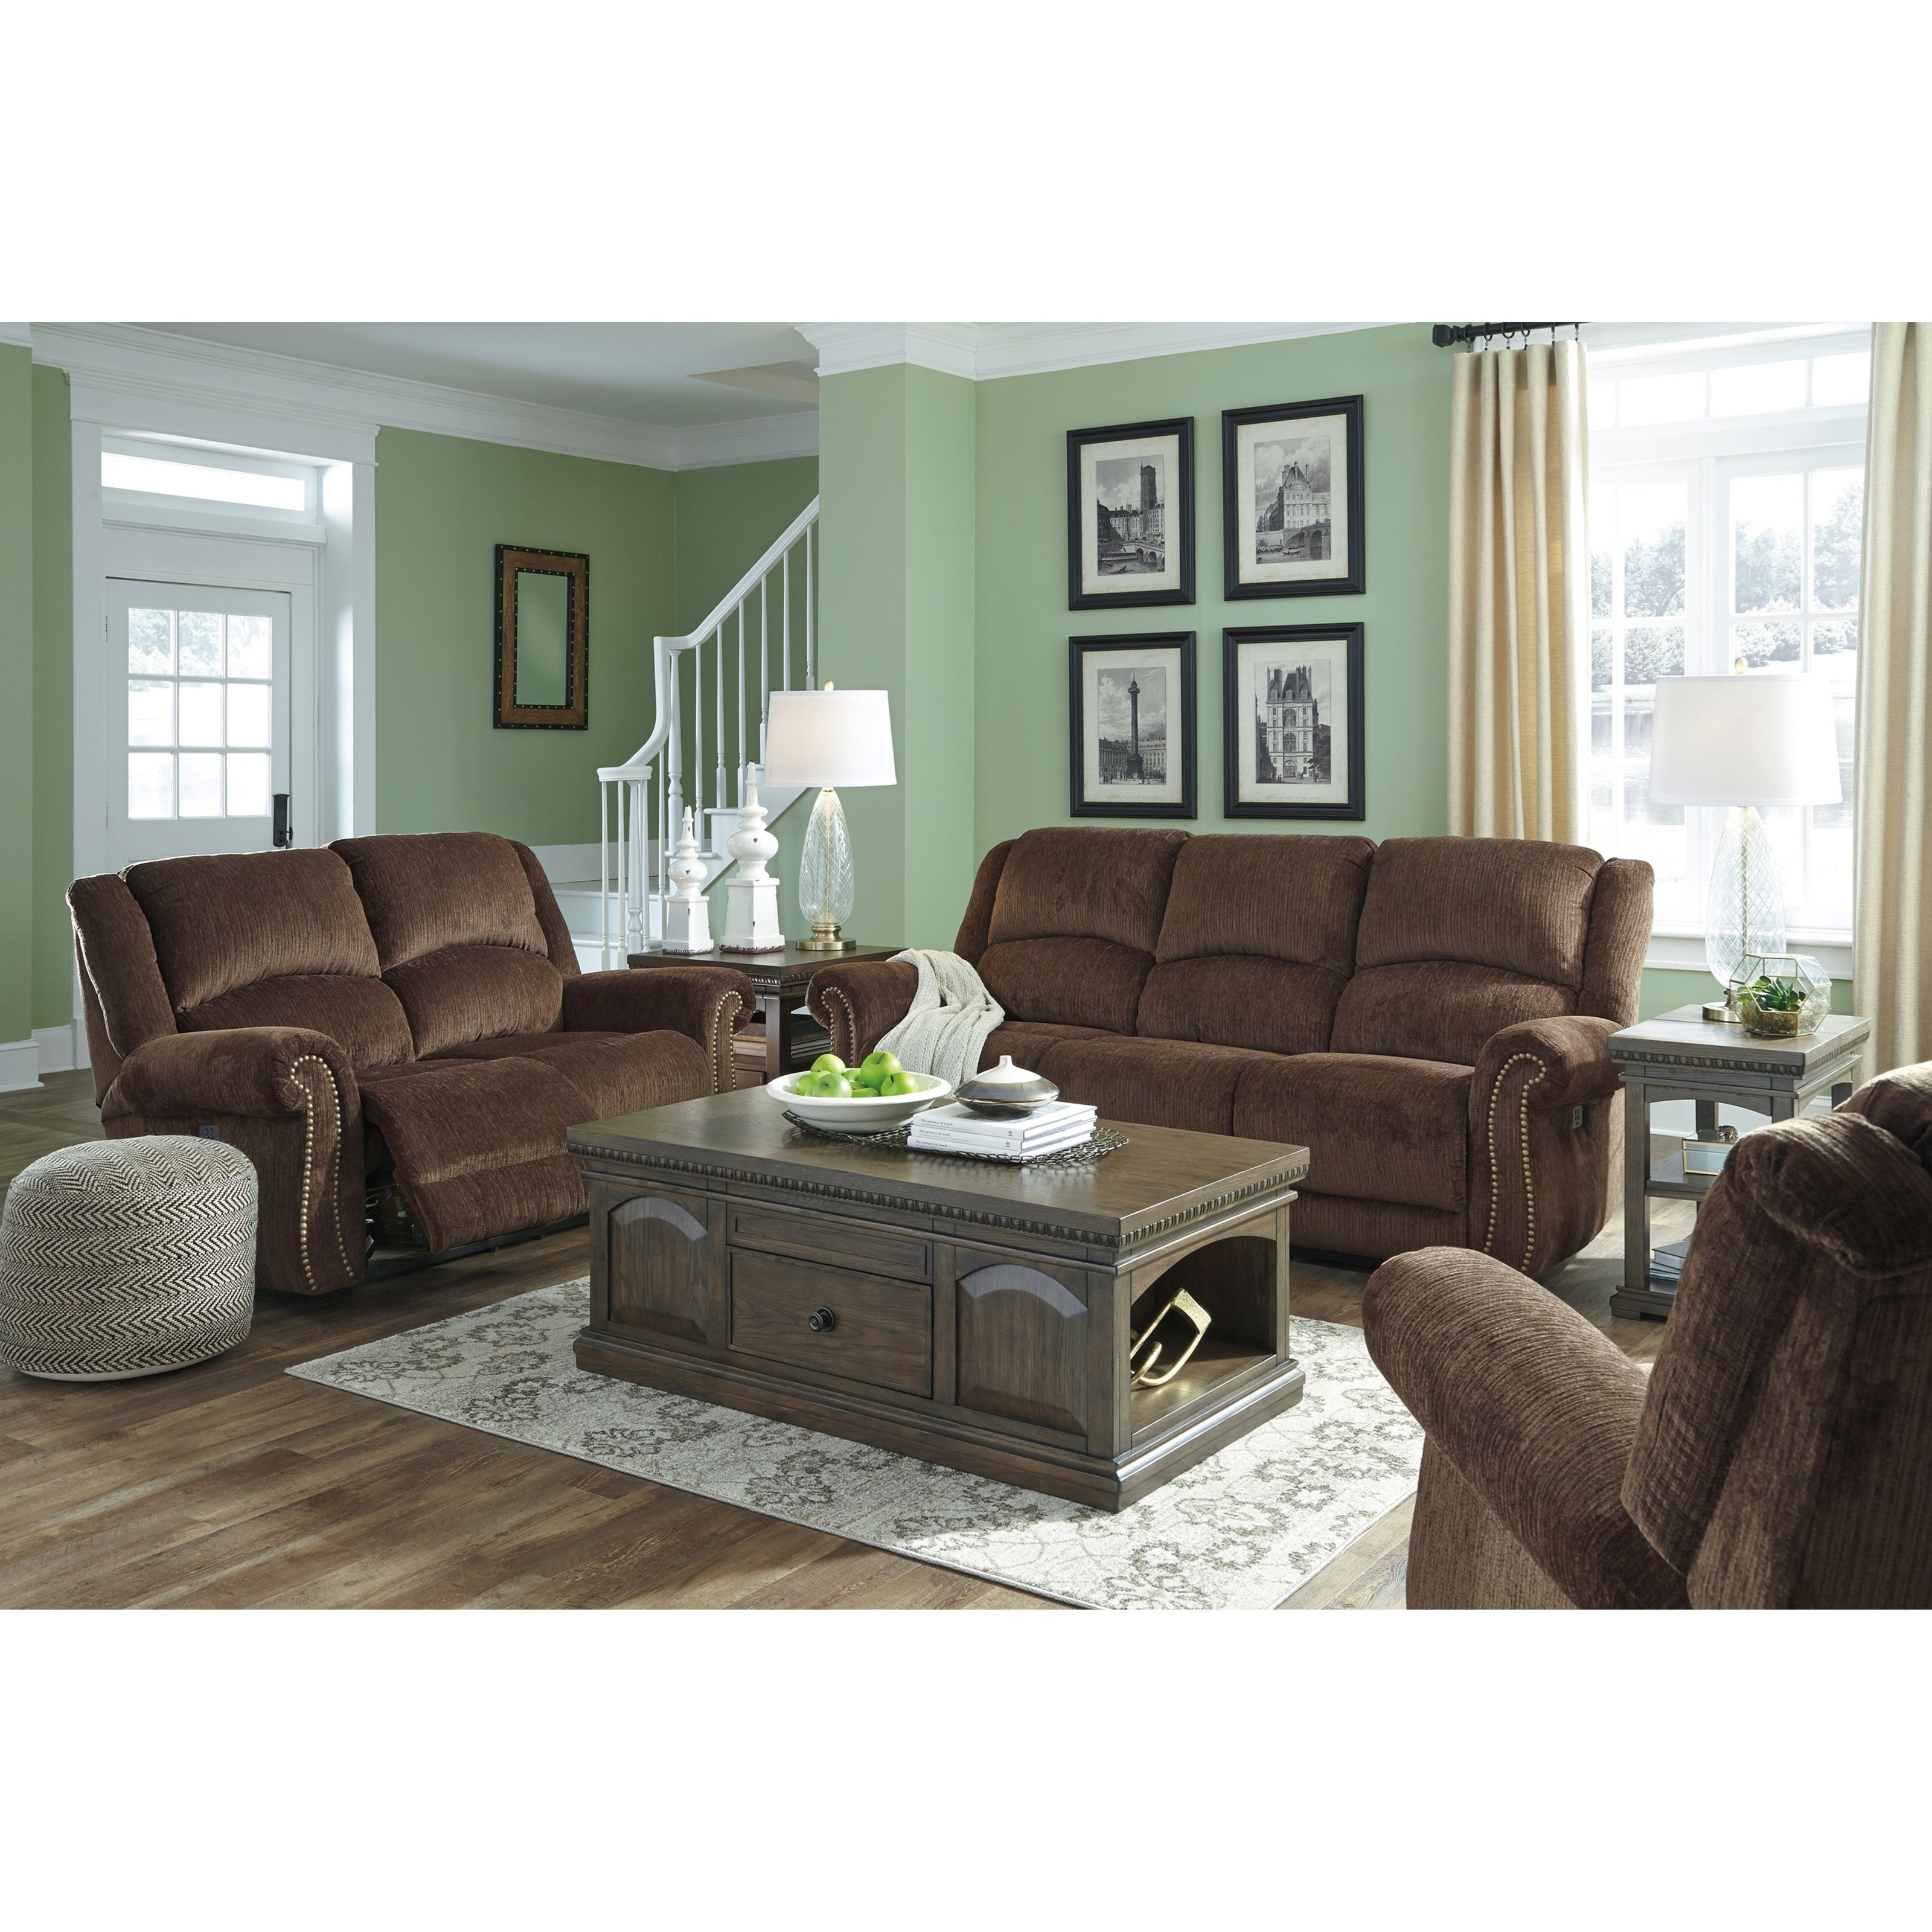 Signature Design By Ashley Goodlow Reclining Living Room